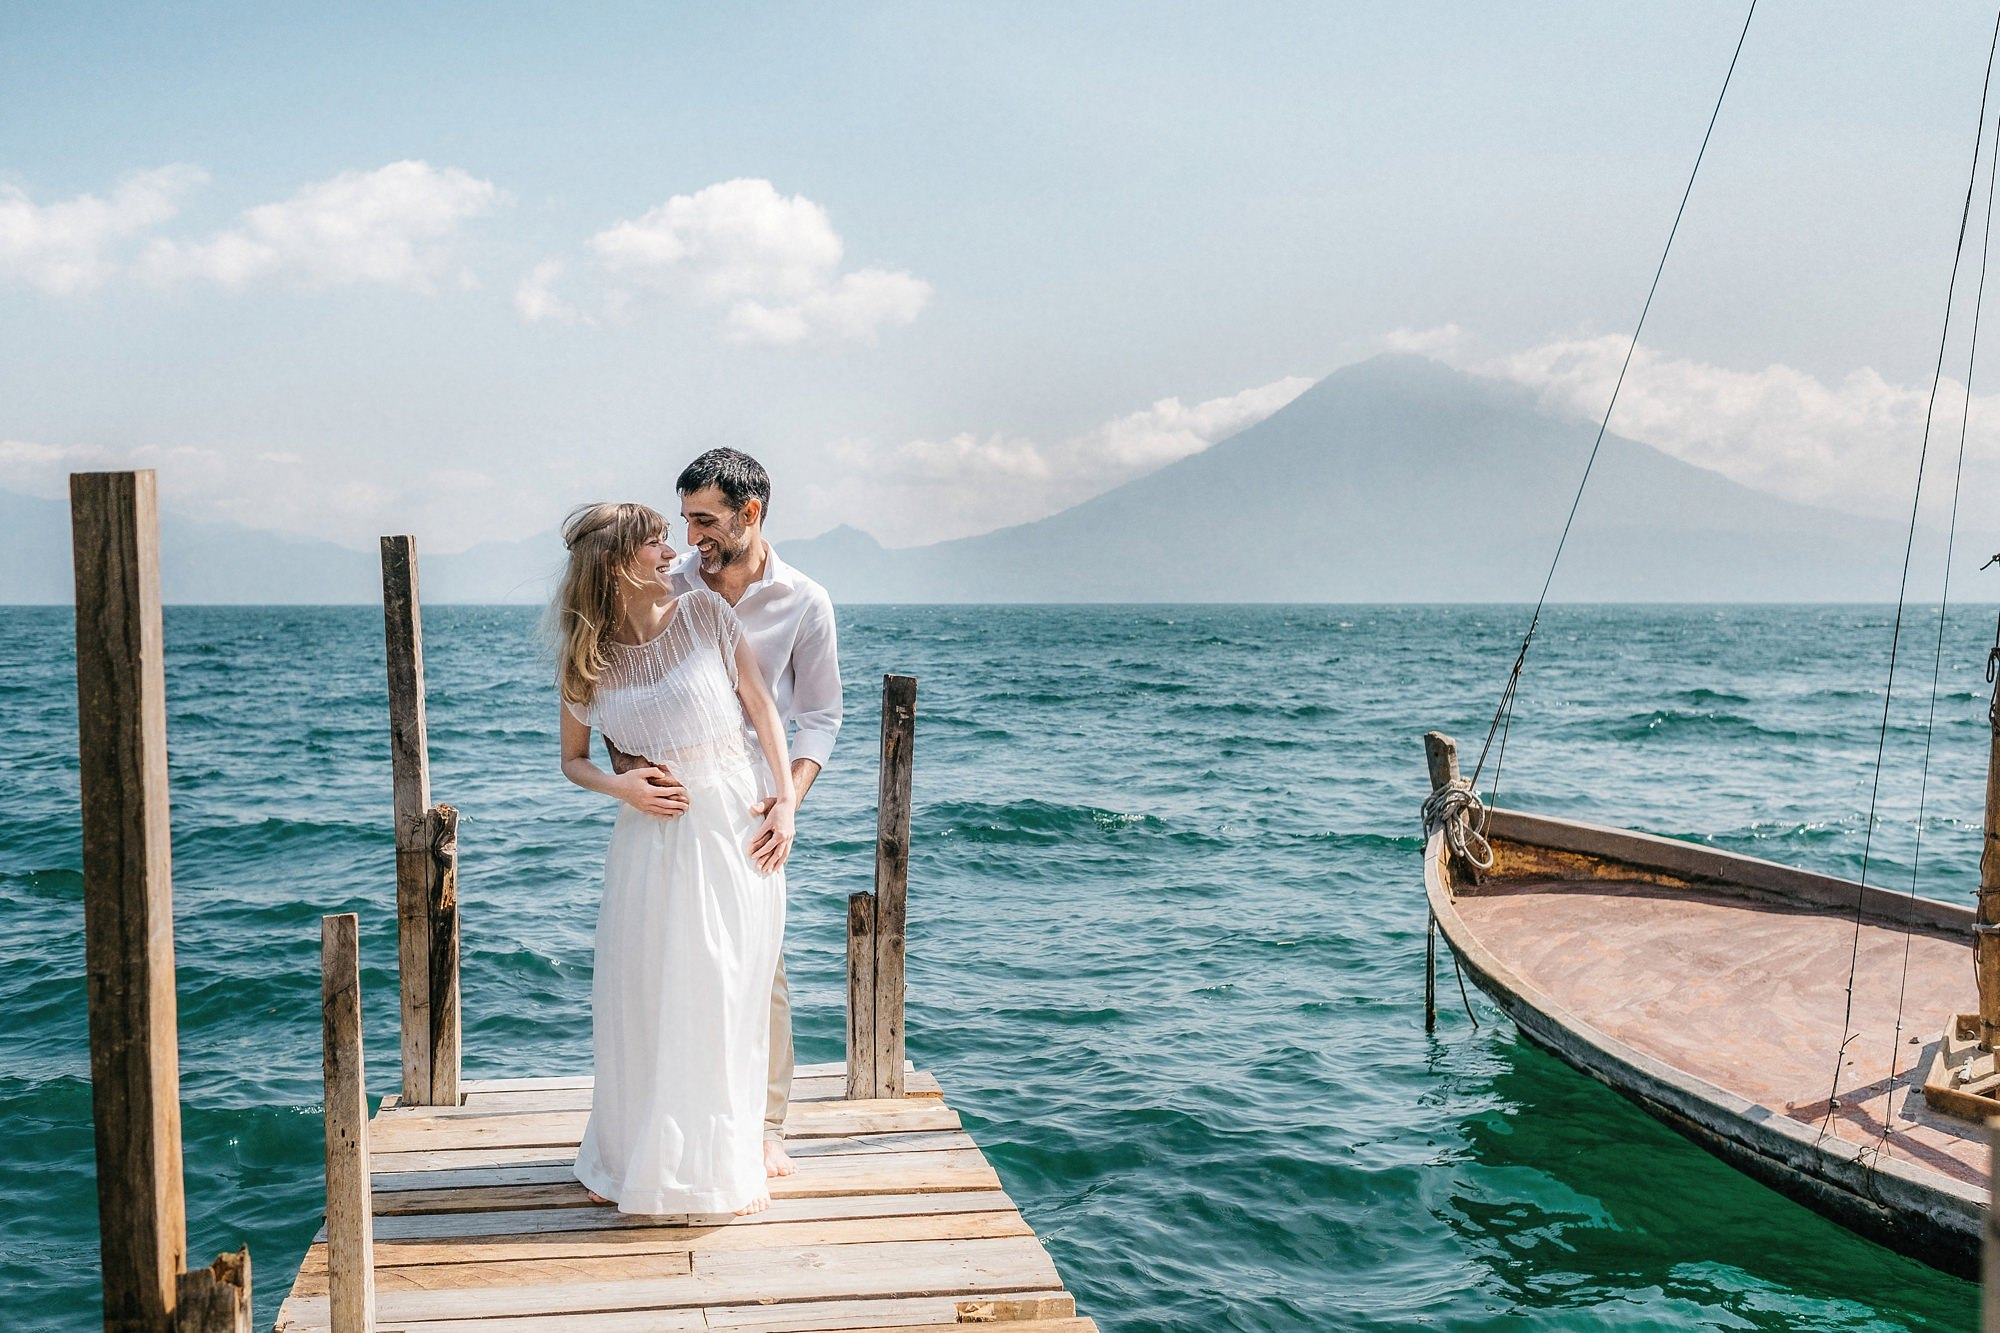 Wedding Elopement Lake Atitlan Guatemala